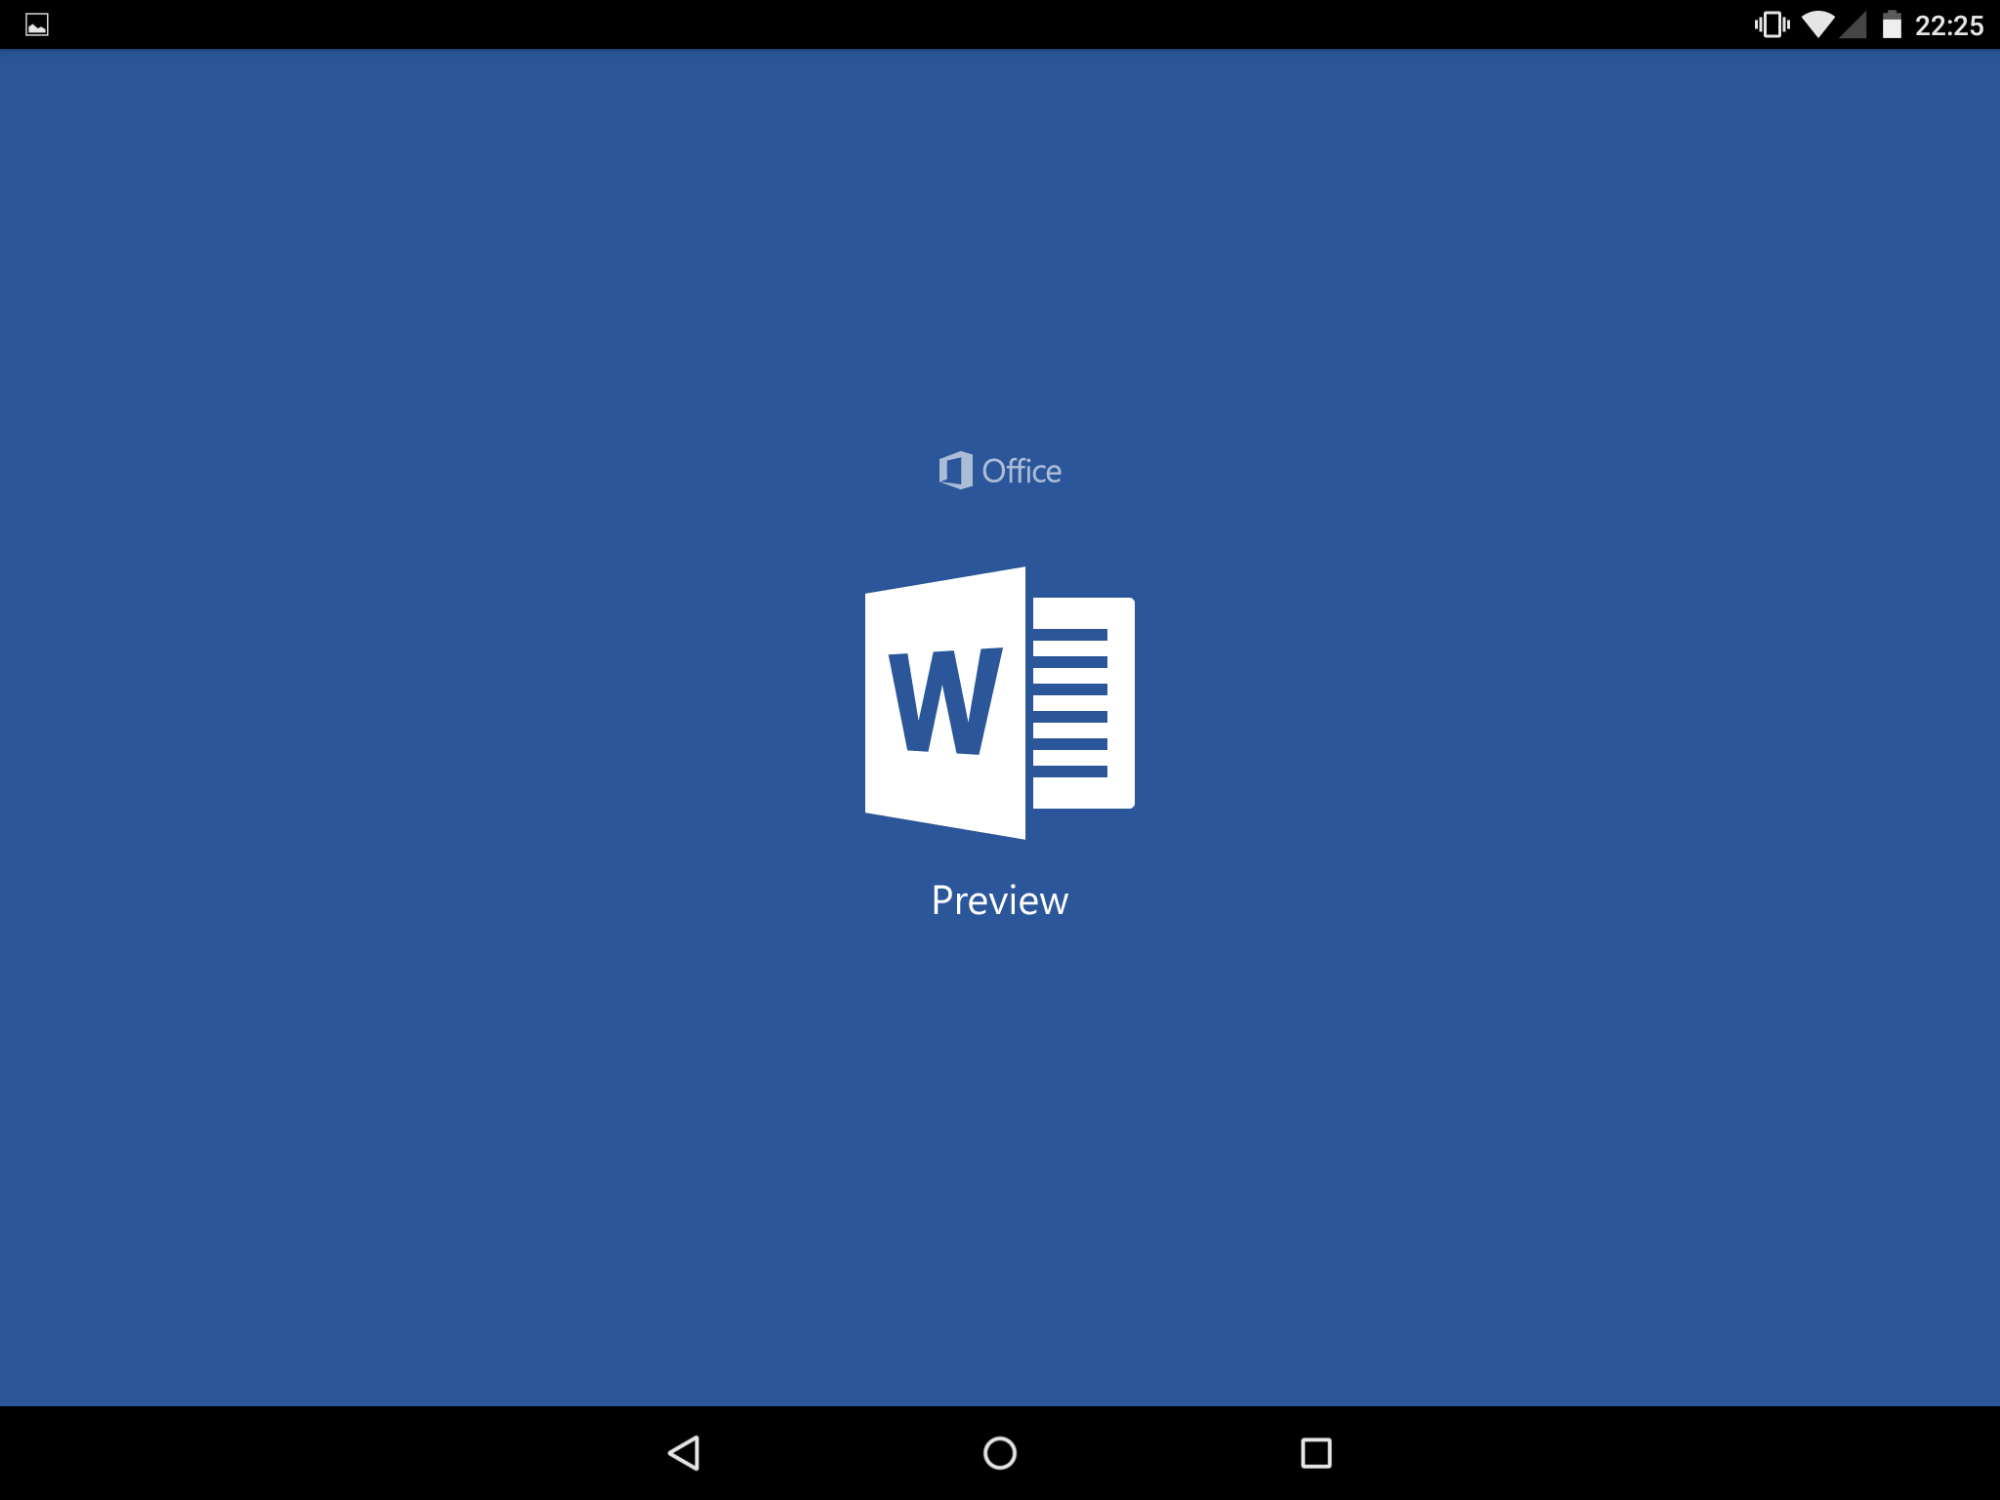 MS Office Comes to Android